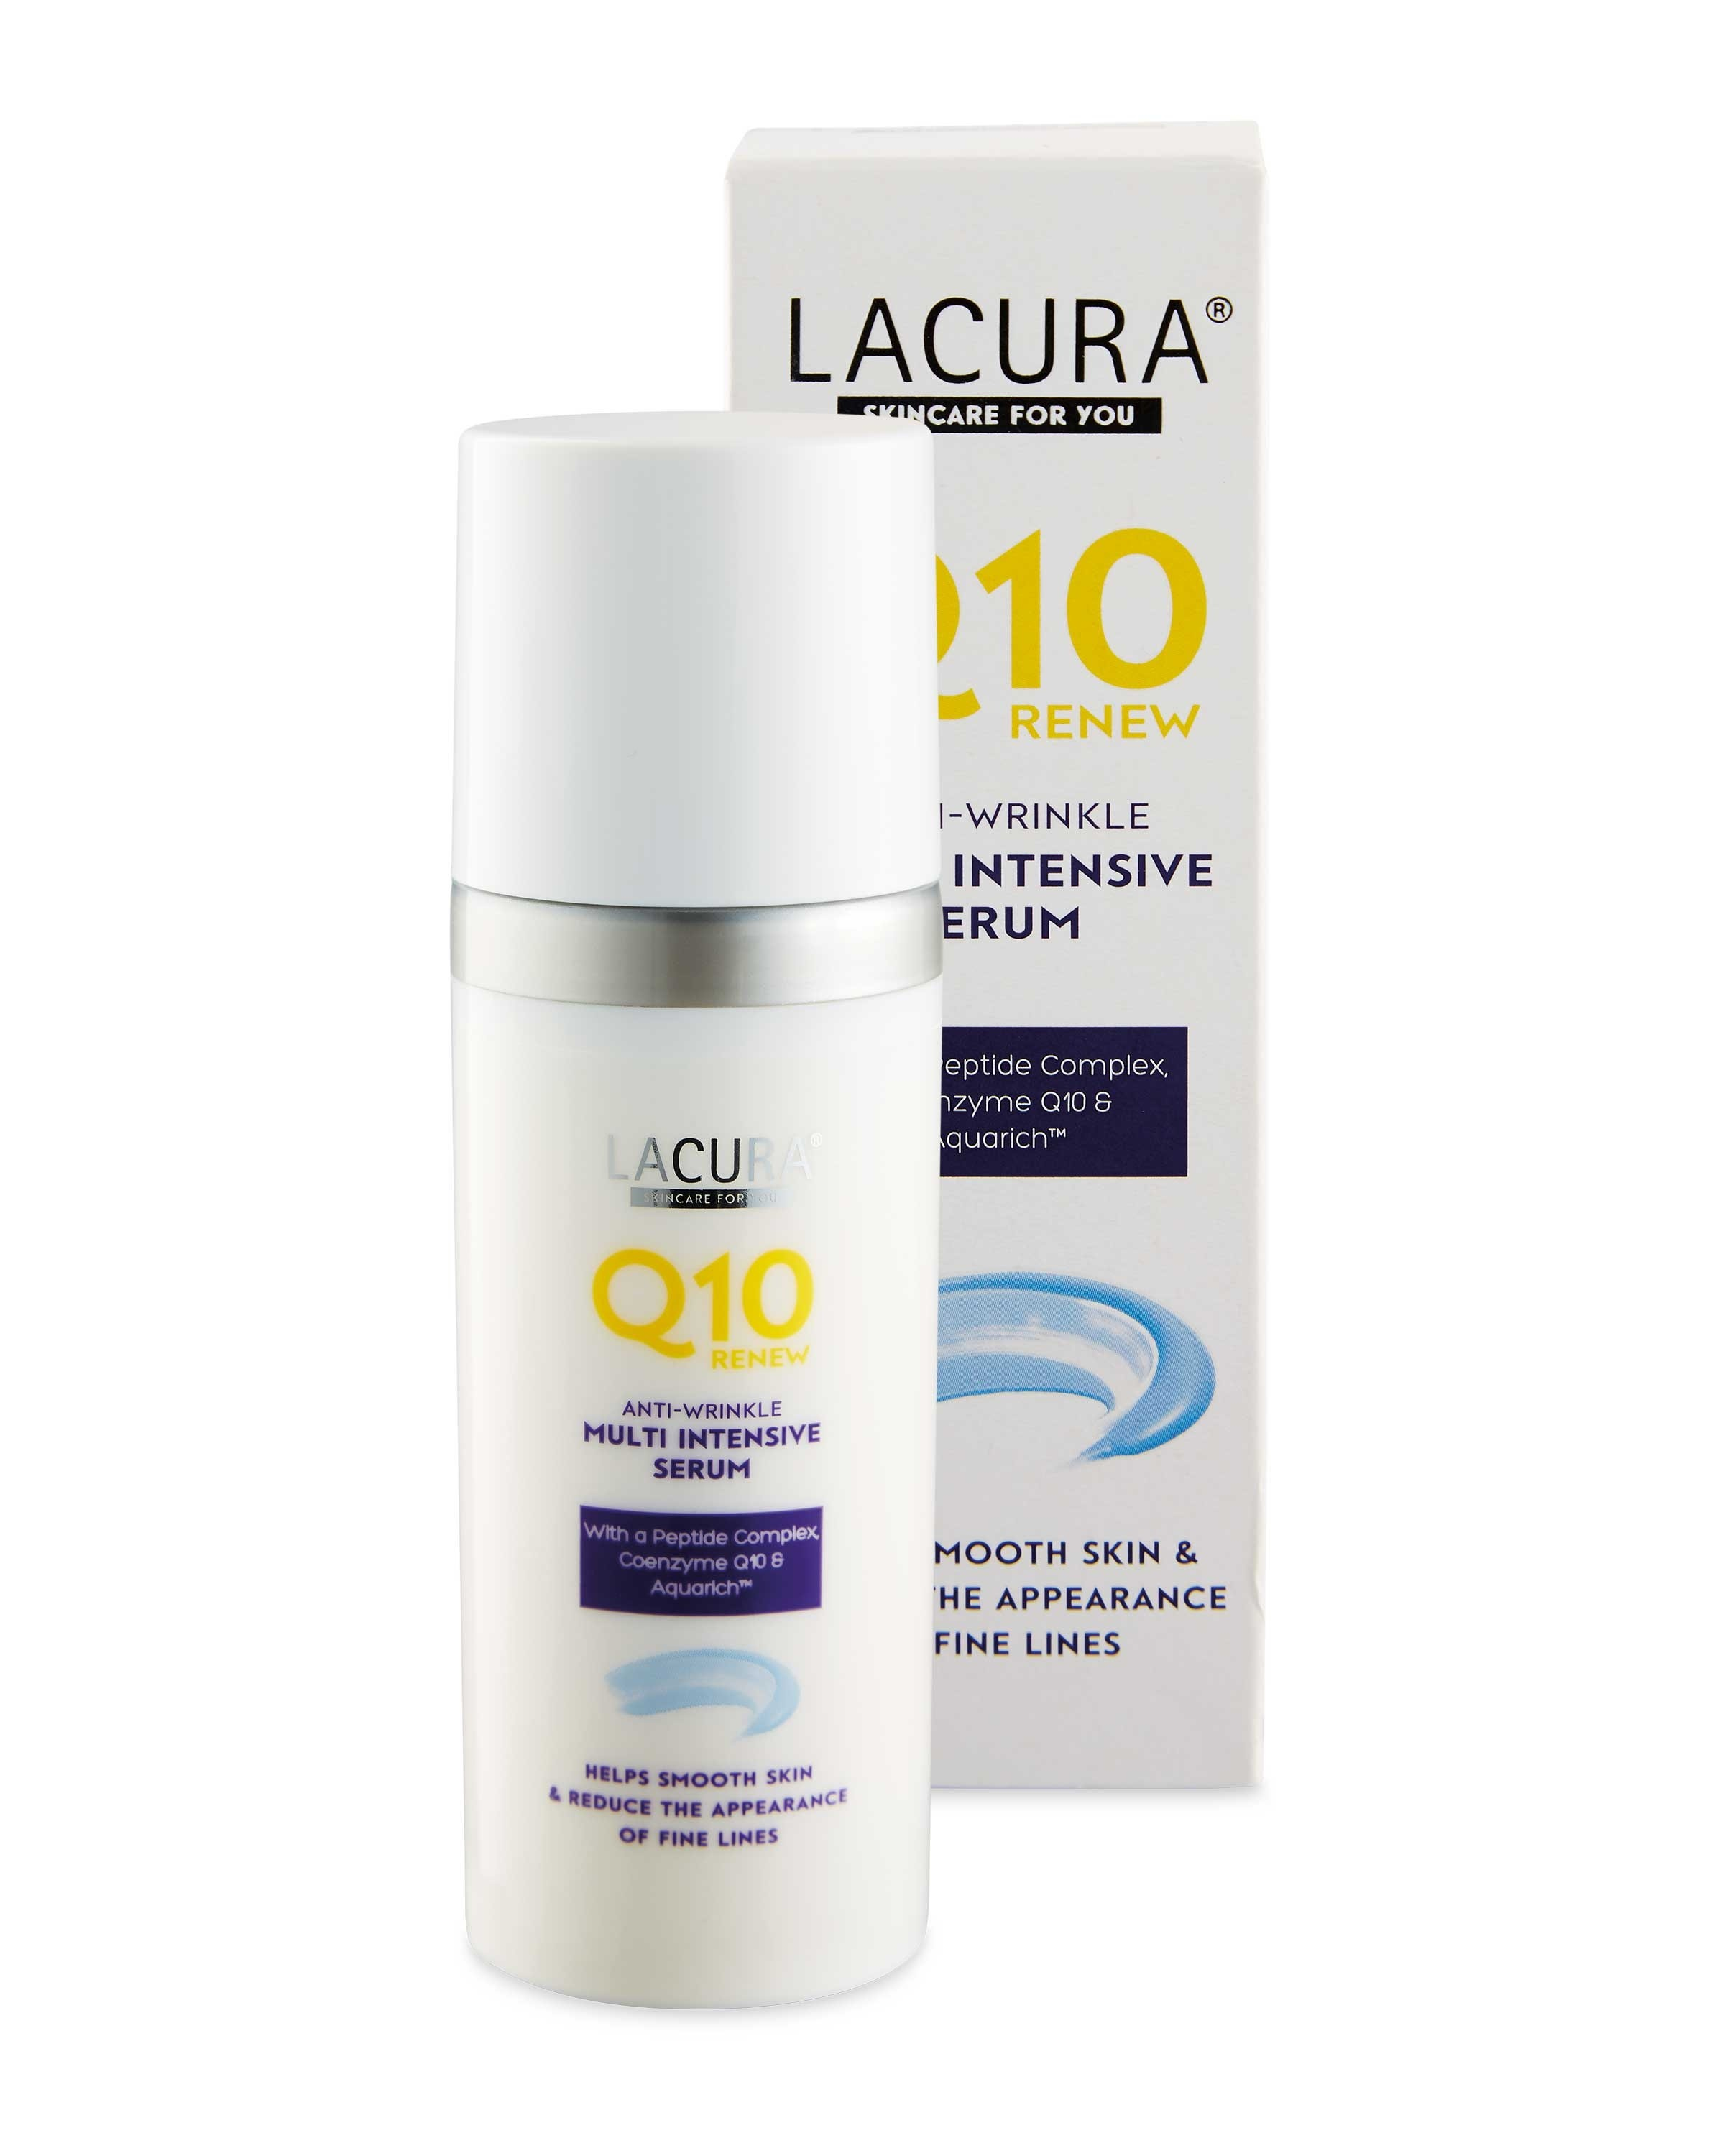 Lacura Q10 Multi-Intensive Serum